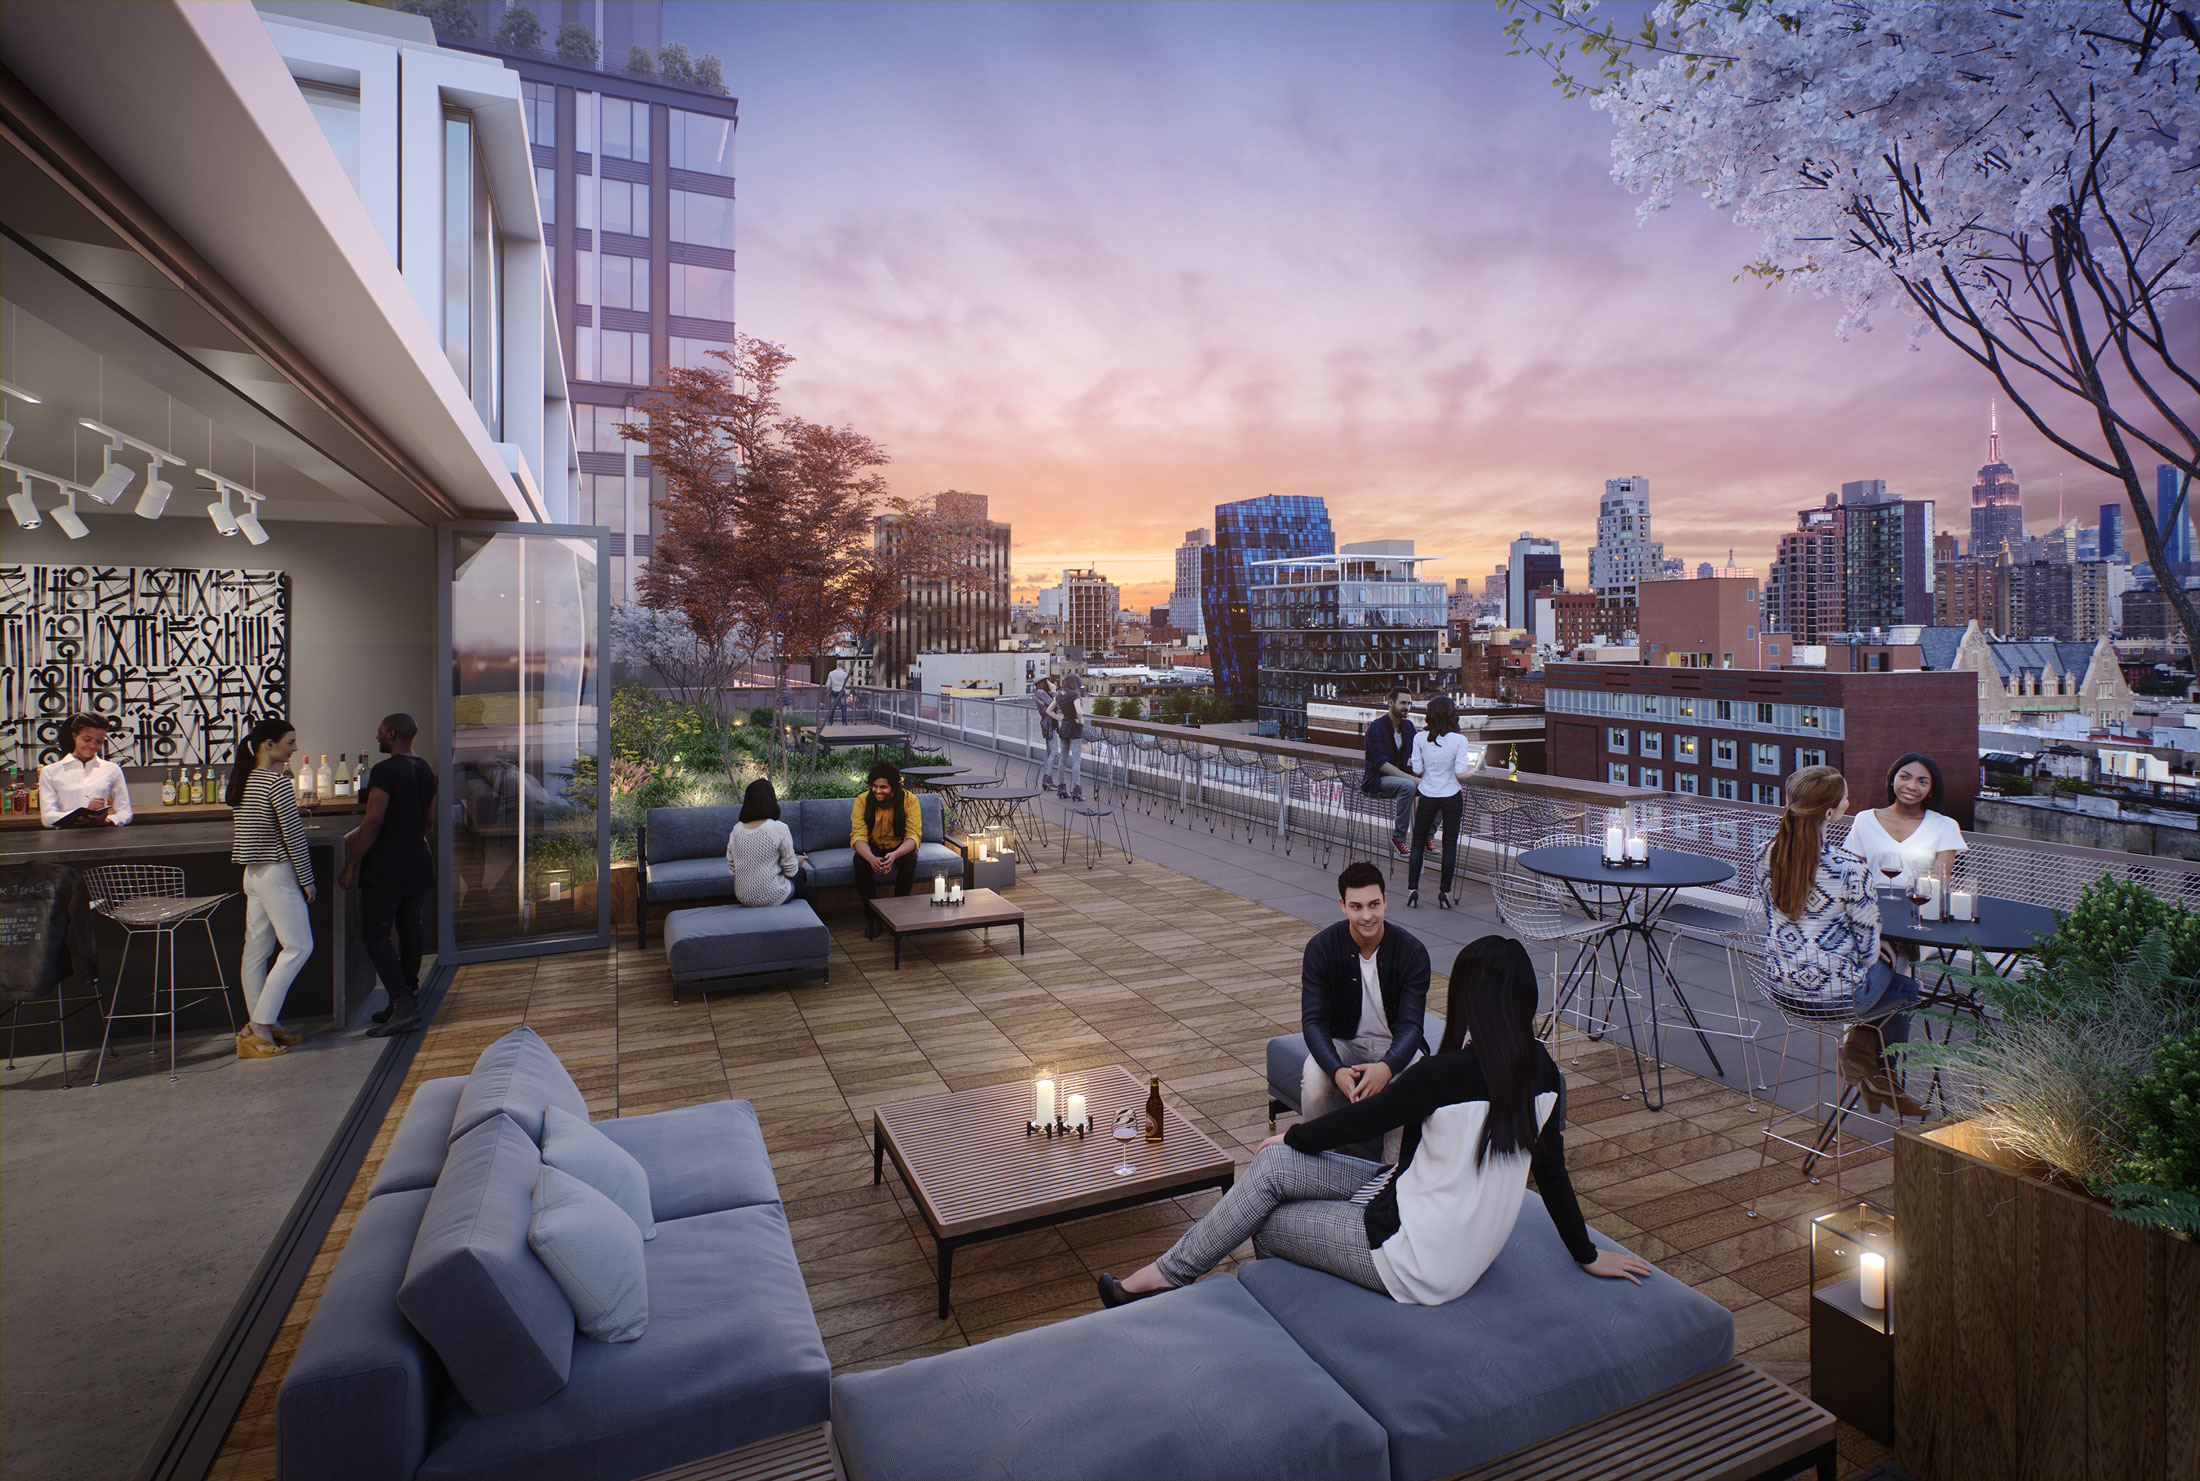 Architectural Rendering of the terrace of The Market Line located on Manhattan's Lower East Side, New York City